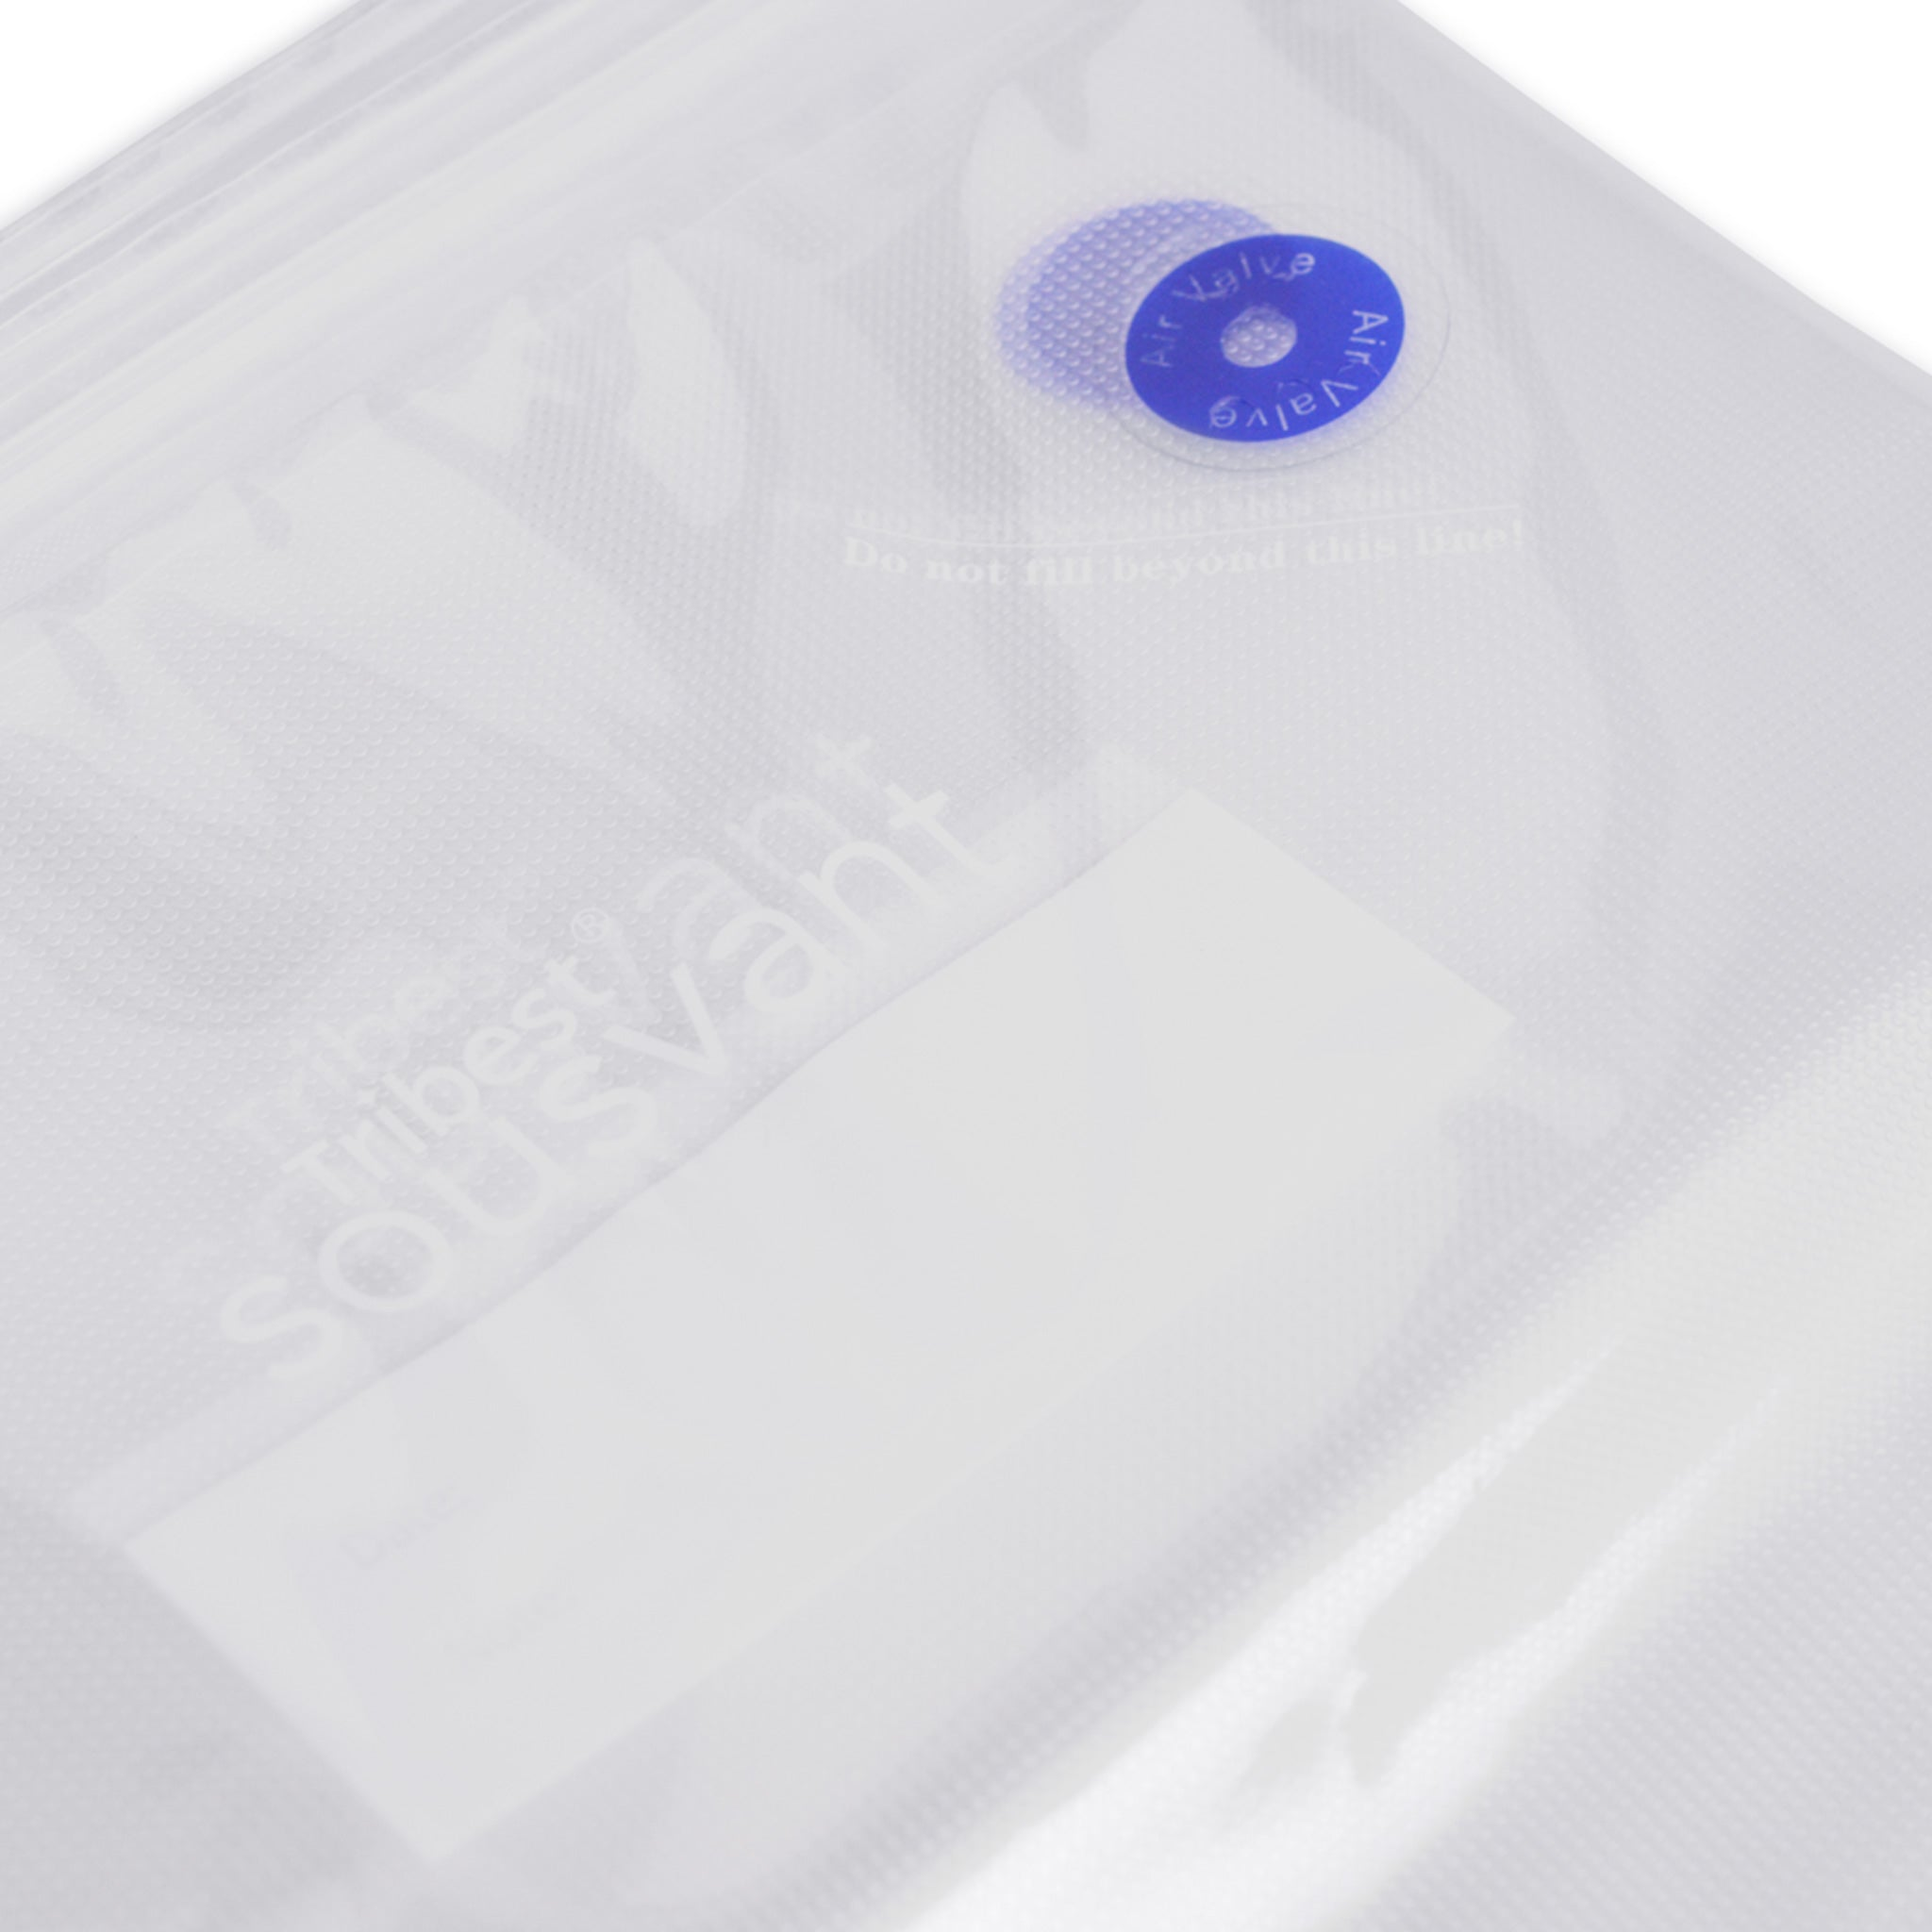 "These are reusable, resealable vacuum bags. They can be used with a vacuum pump to create an airtight seal. They come in a set of 10.   Capacity: 0.875 Gallons/112 oz Dimensions:11""L x 10"